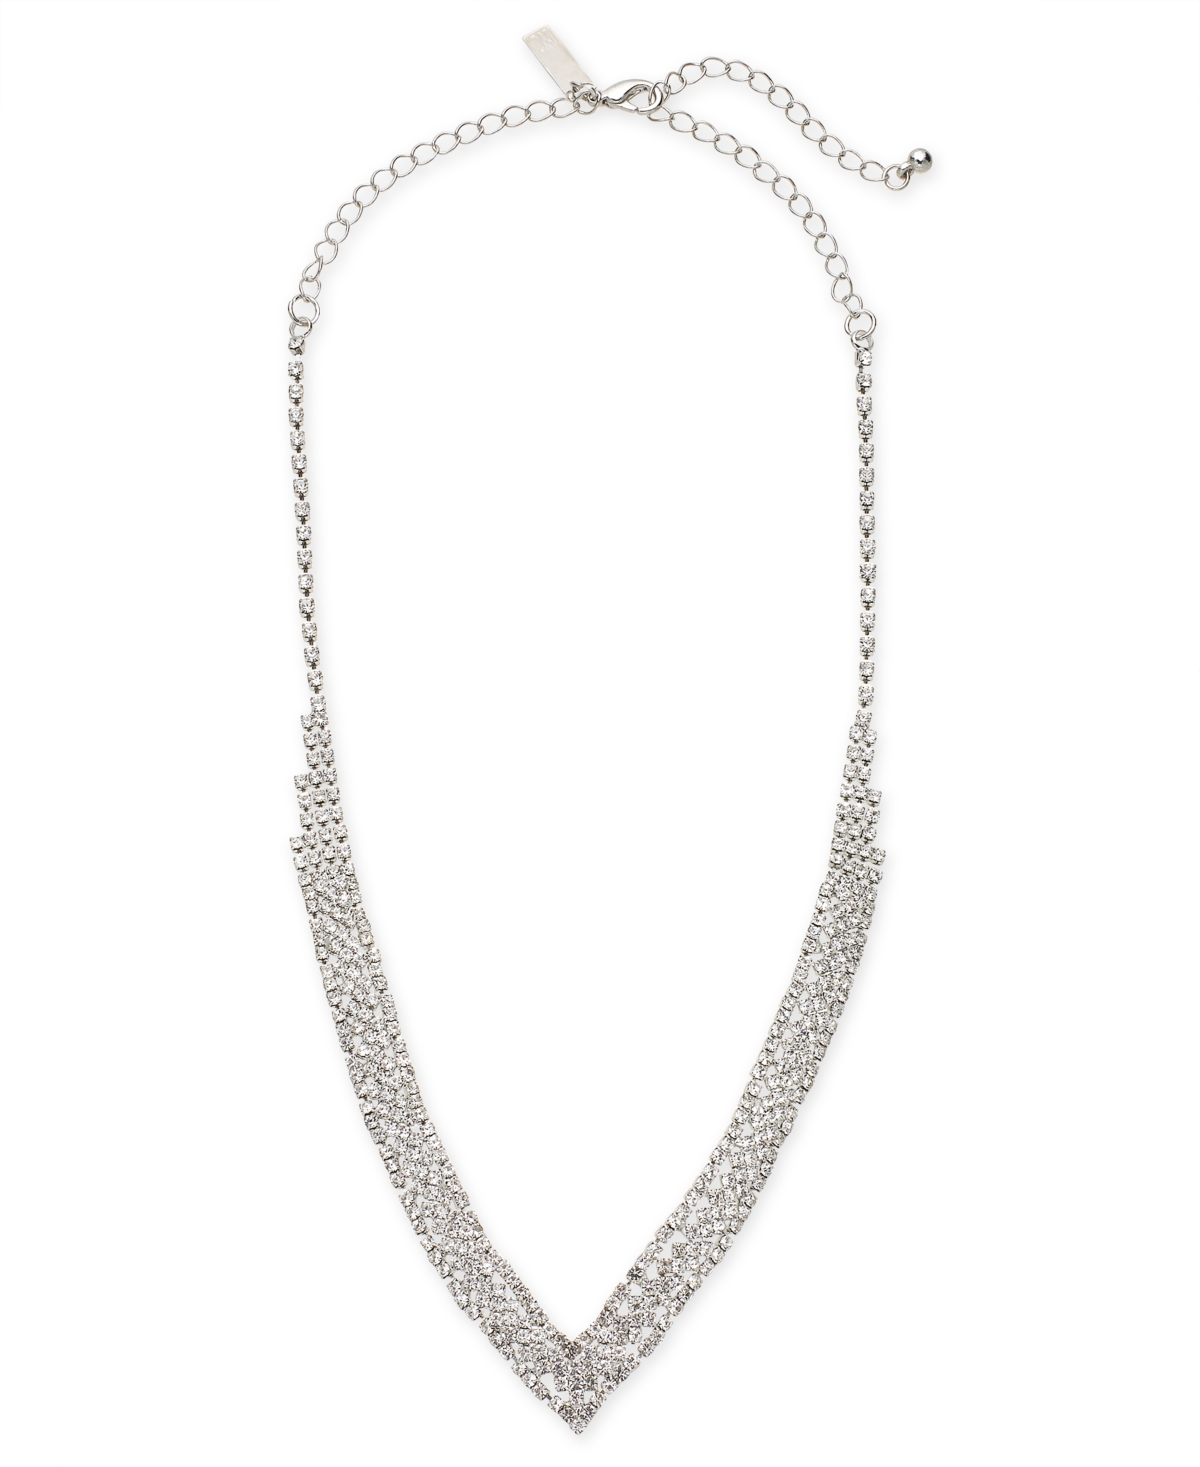 Inc International Concepts Silver-Tone Crystal Pave Choker Necklace, 12